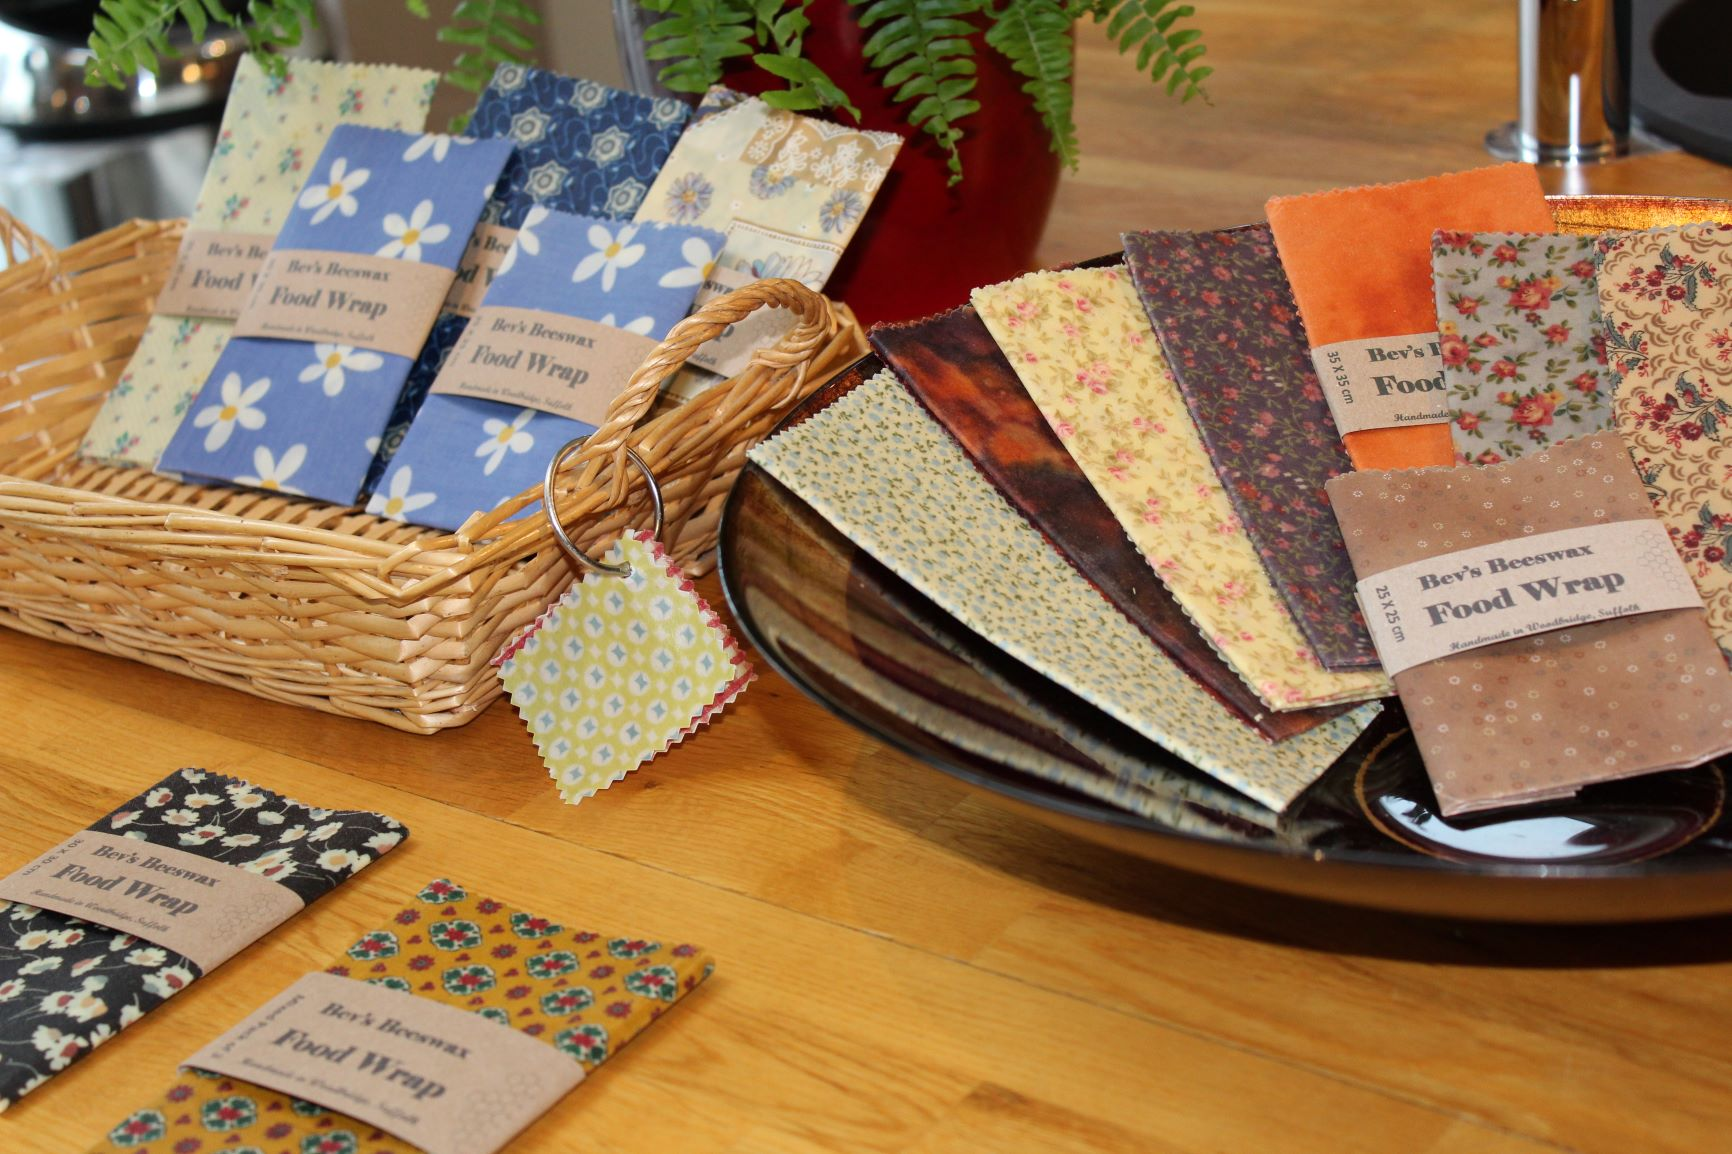 Basket and bowl of Bev's Beeswax wraps